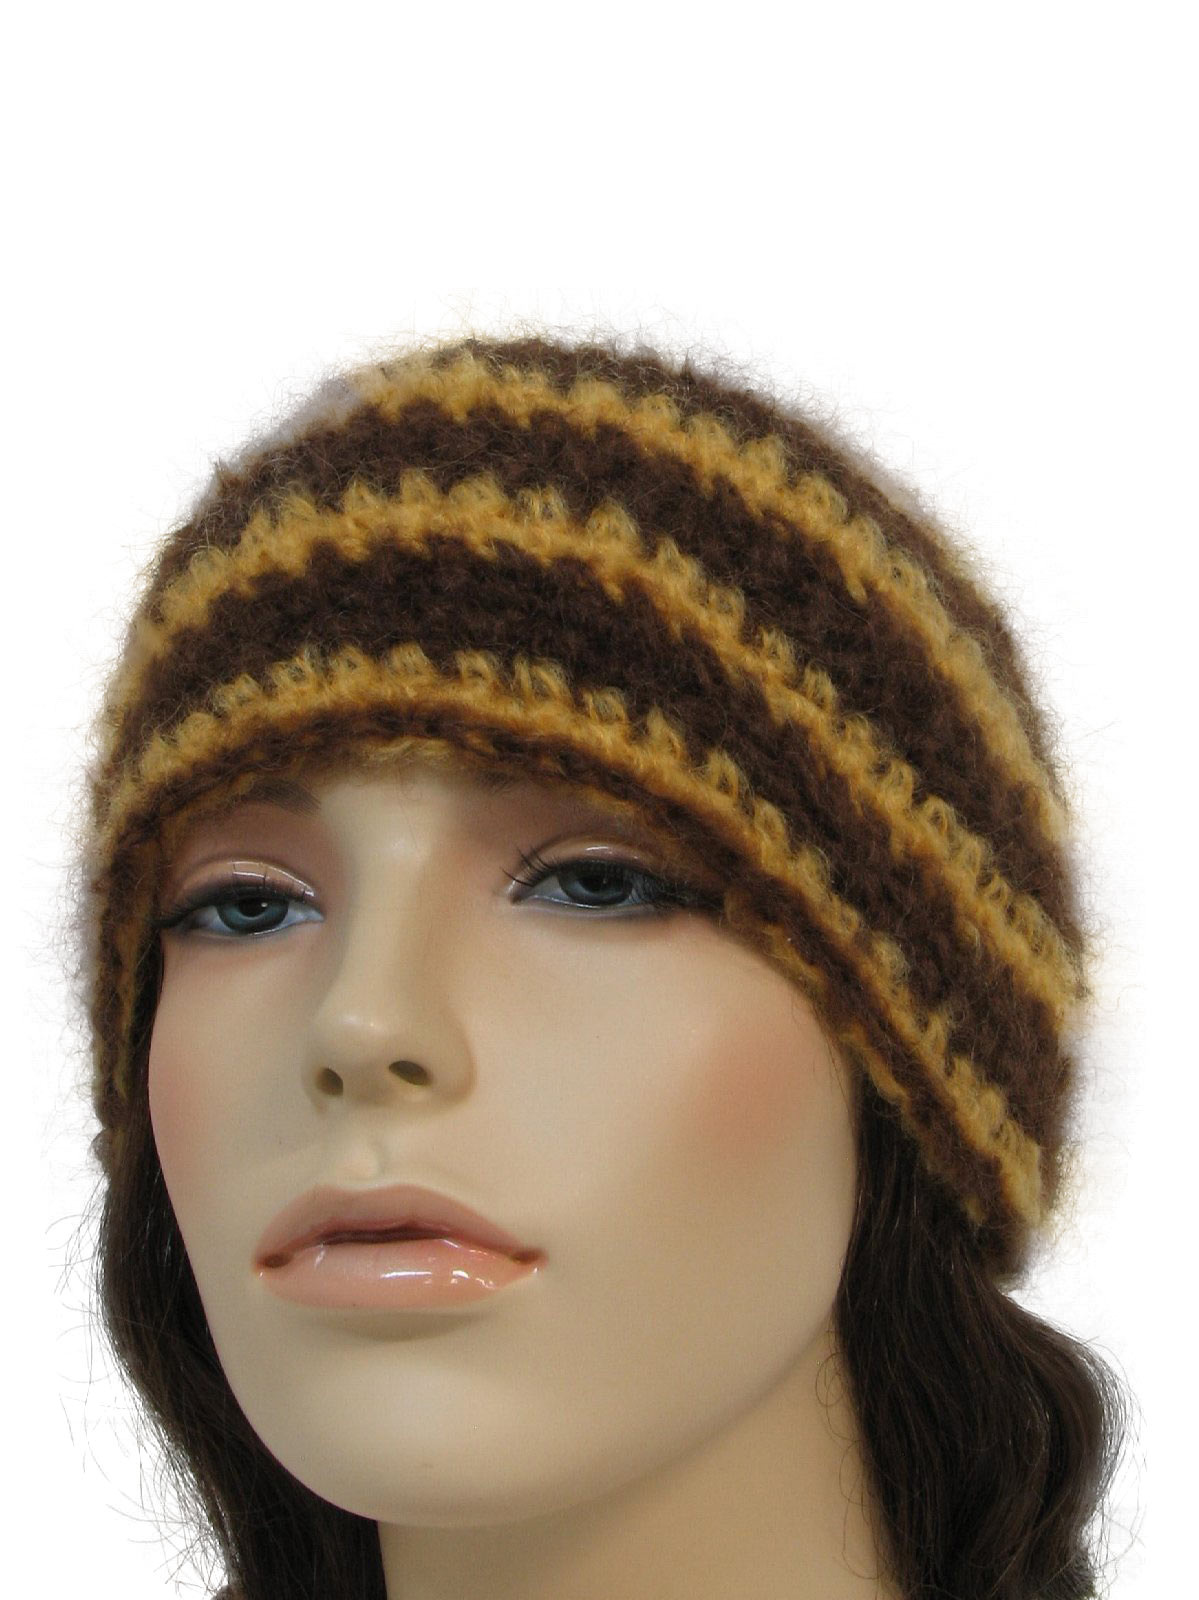 Vintage Hand Crocheted Seventies Hat 70s Style Made Recently